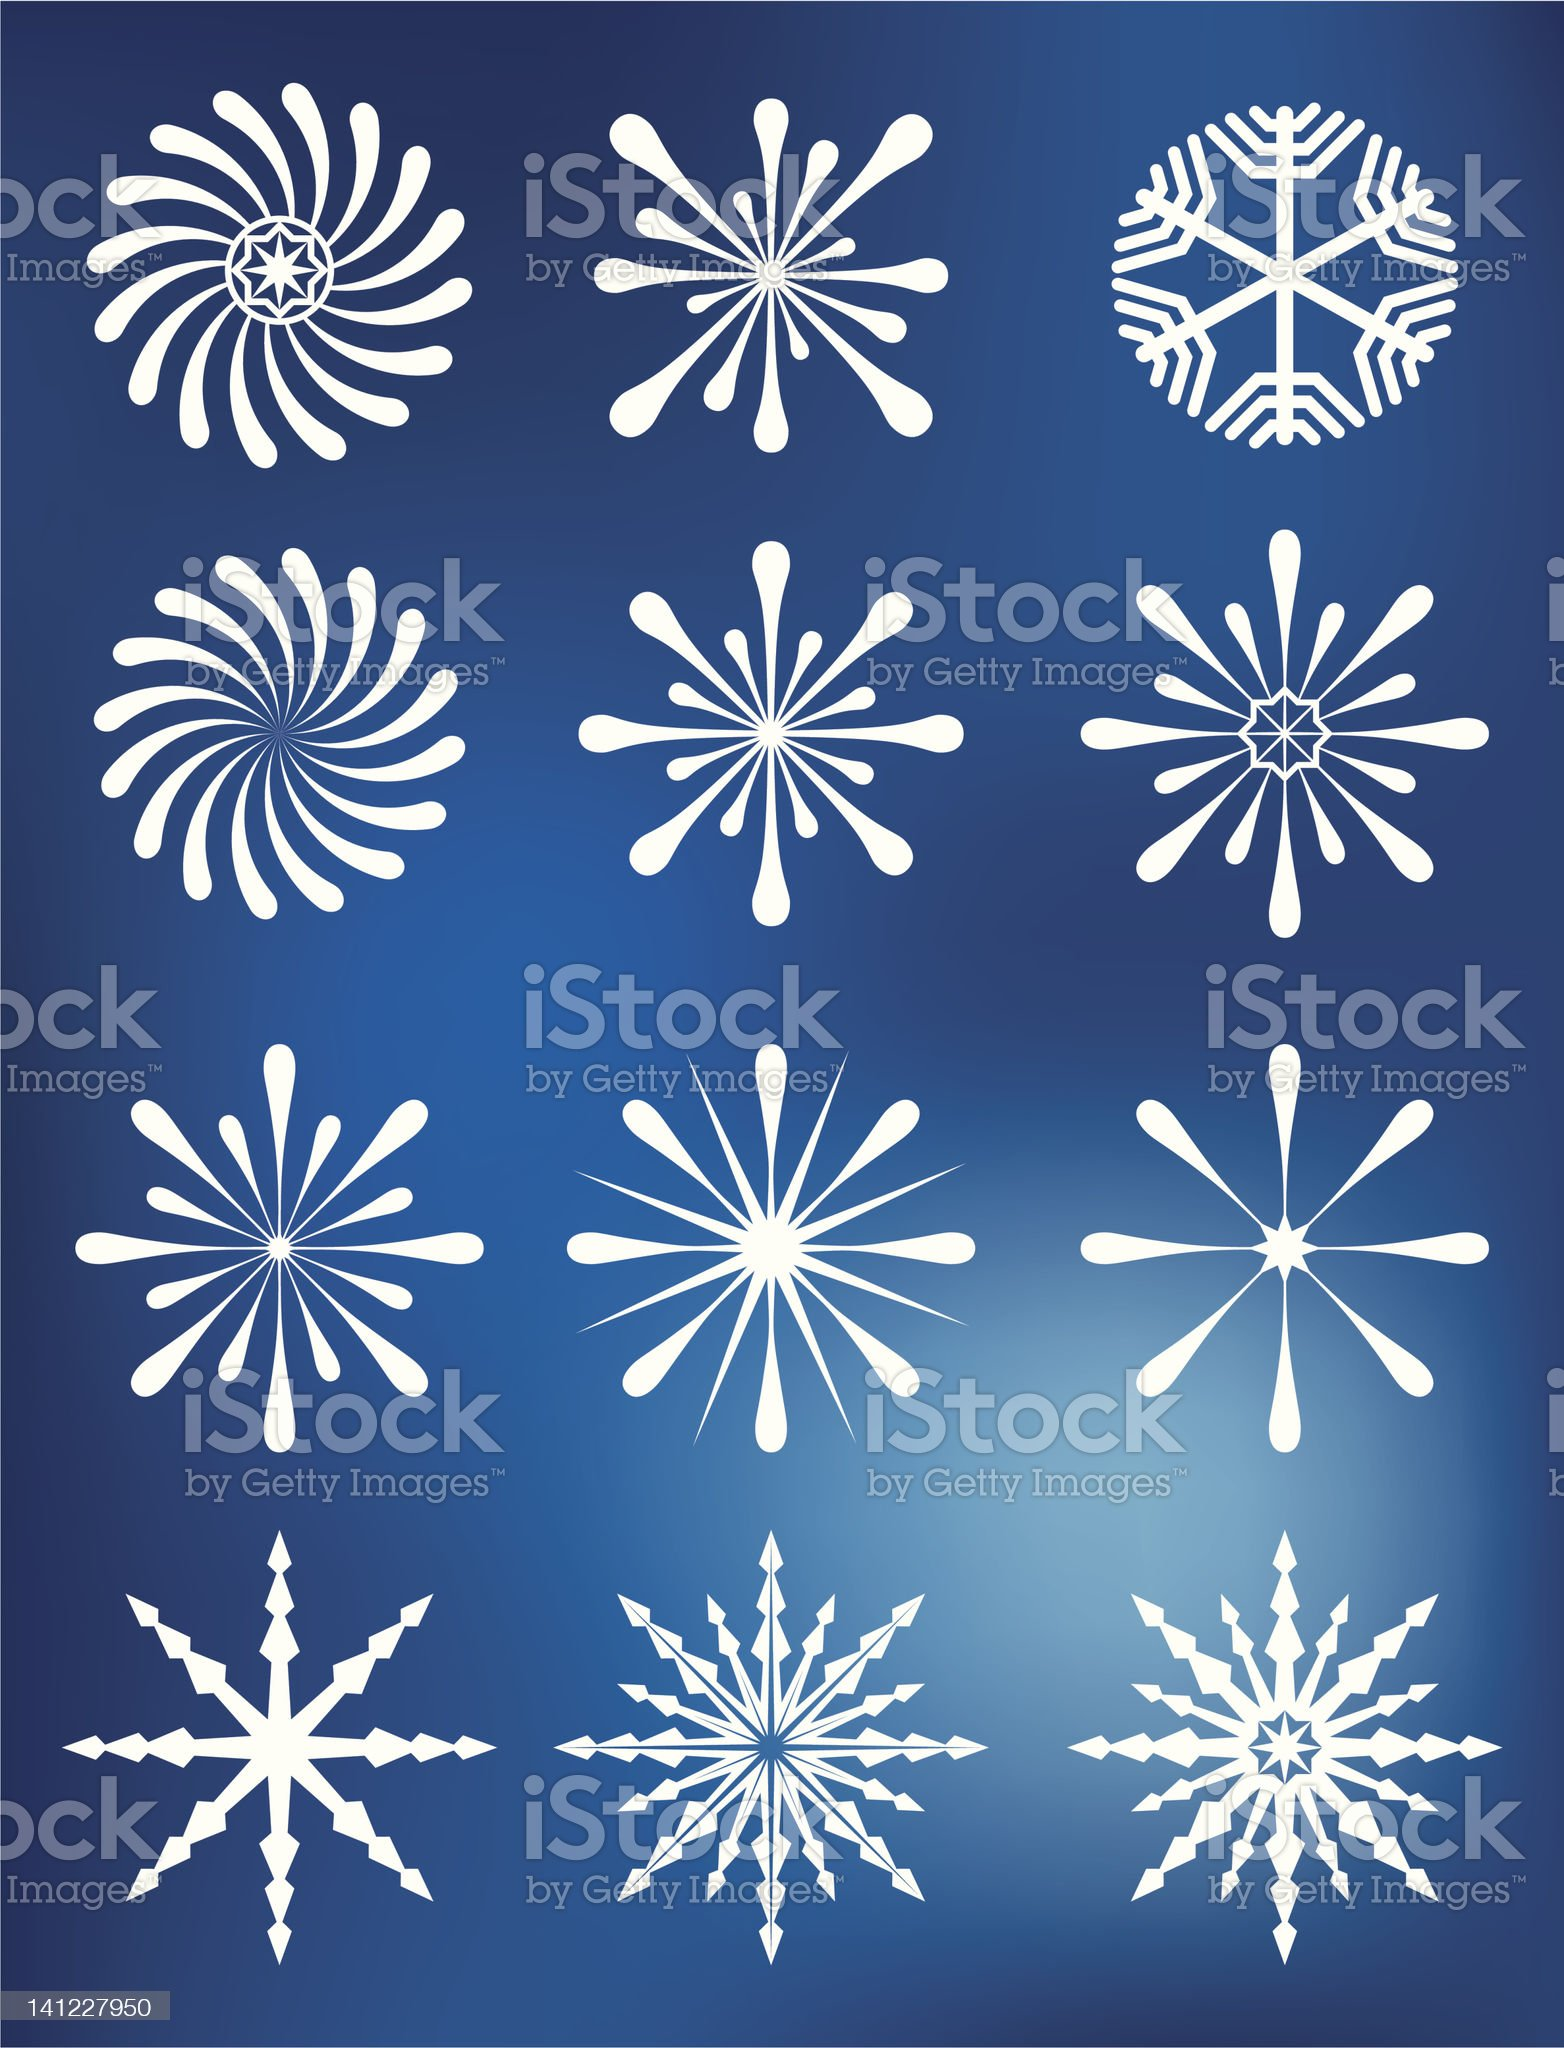 Snowflakes Collection on Blue background royalty-free stock vector art